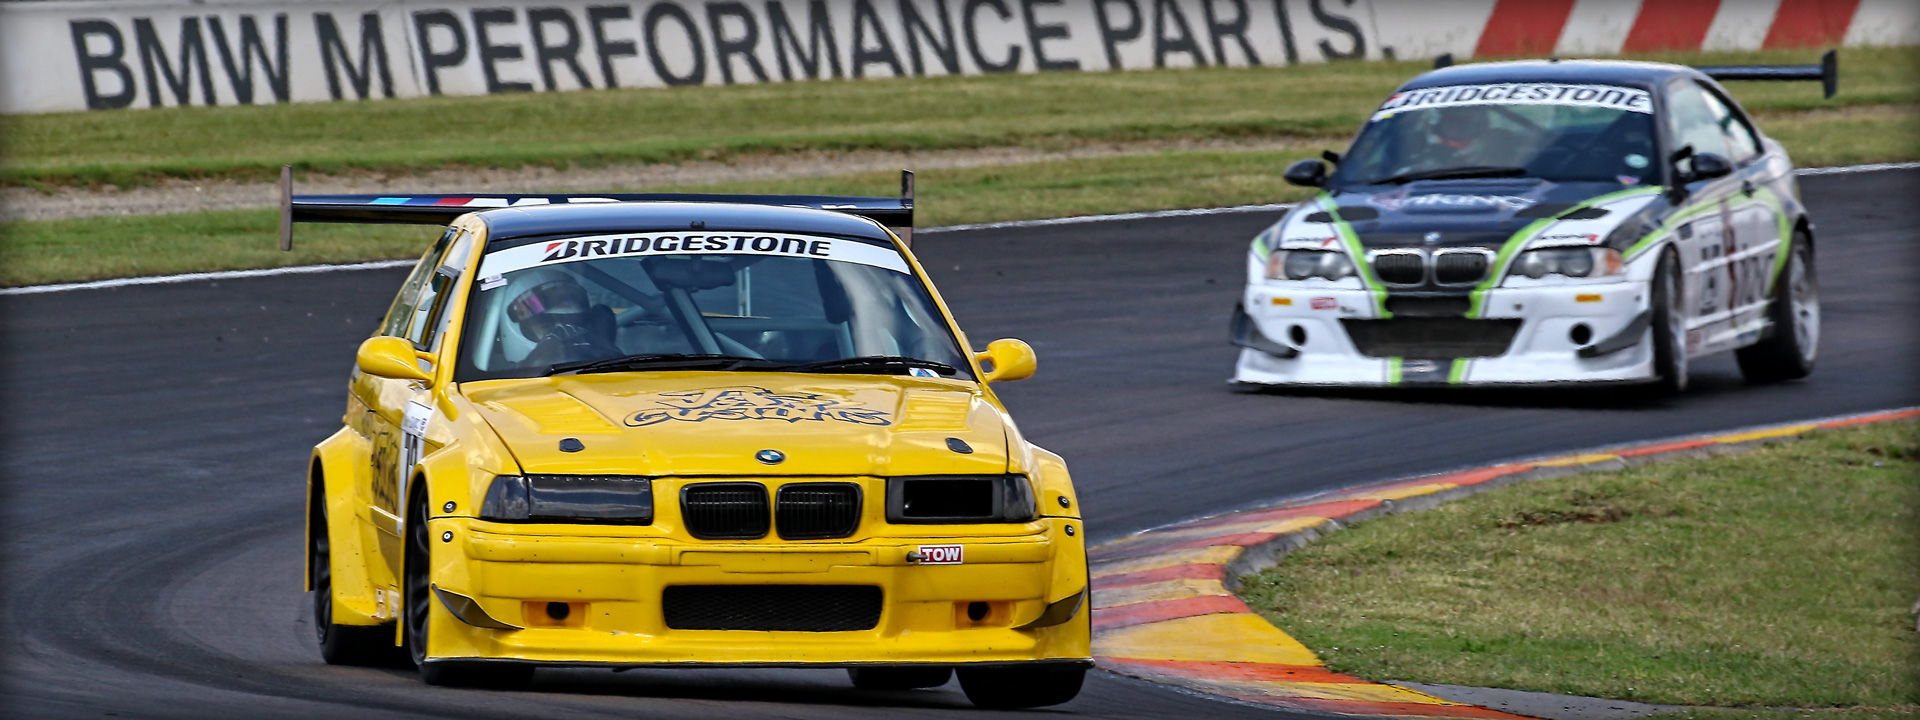 Bridgestone BMW Club Racing Series - Round 3 - Zwartkops - 2017-04-08 - Race Report